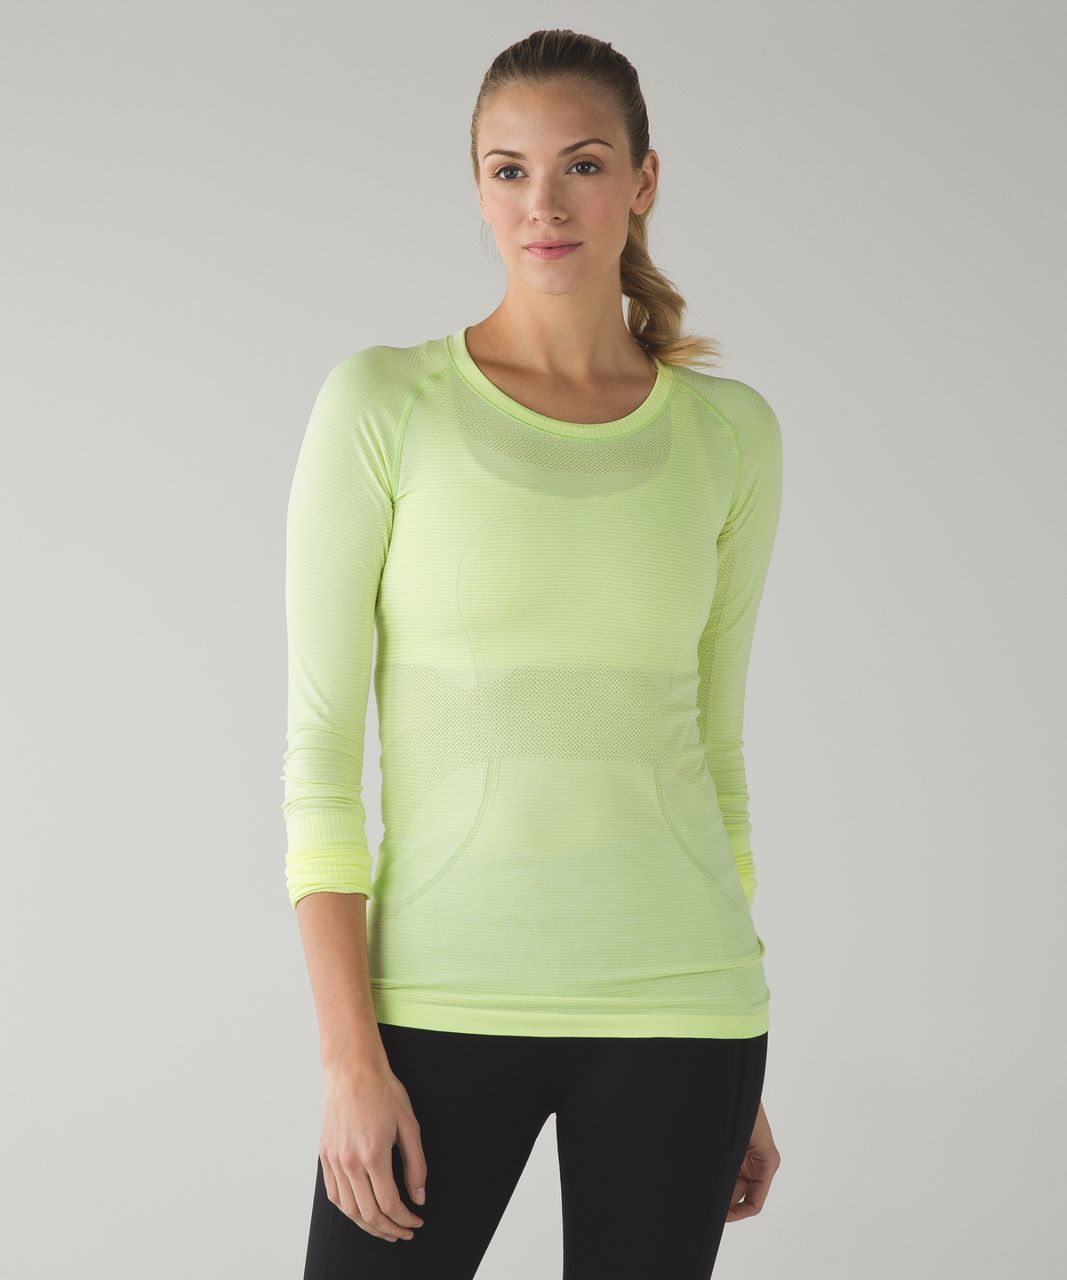 Lululemon Swiftly Tech Long Sleeve Crew - Heathered Ray